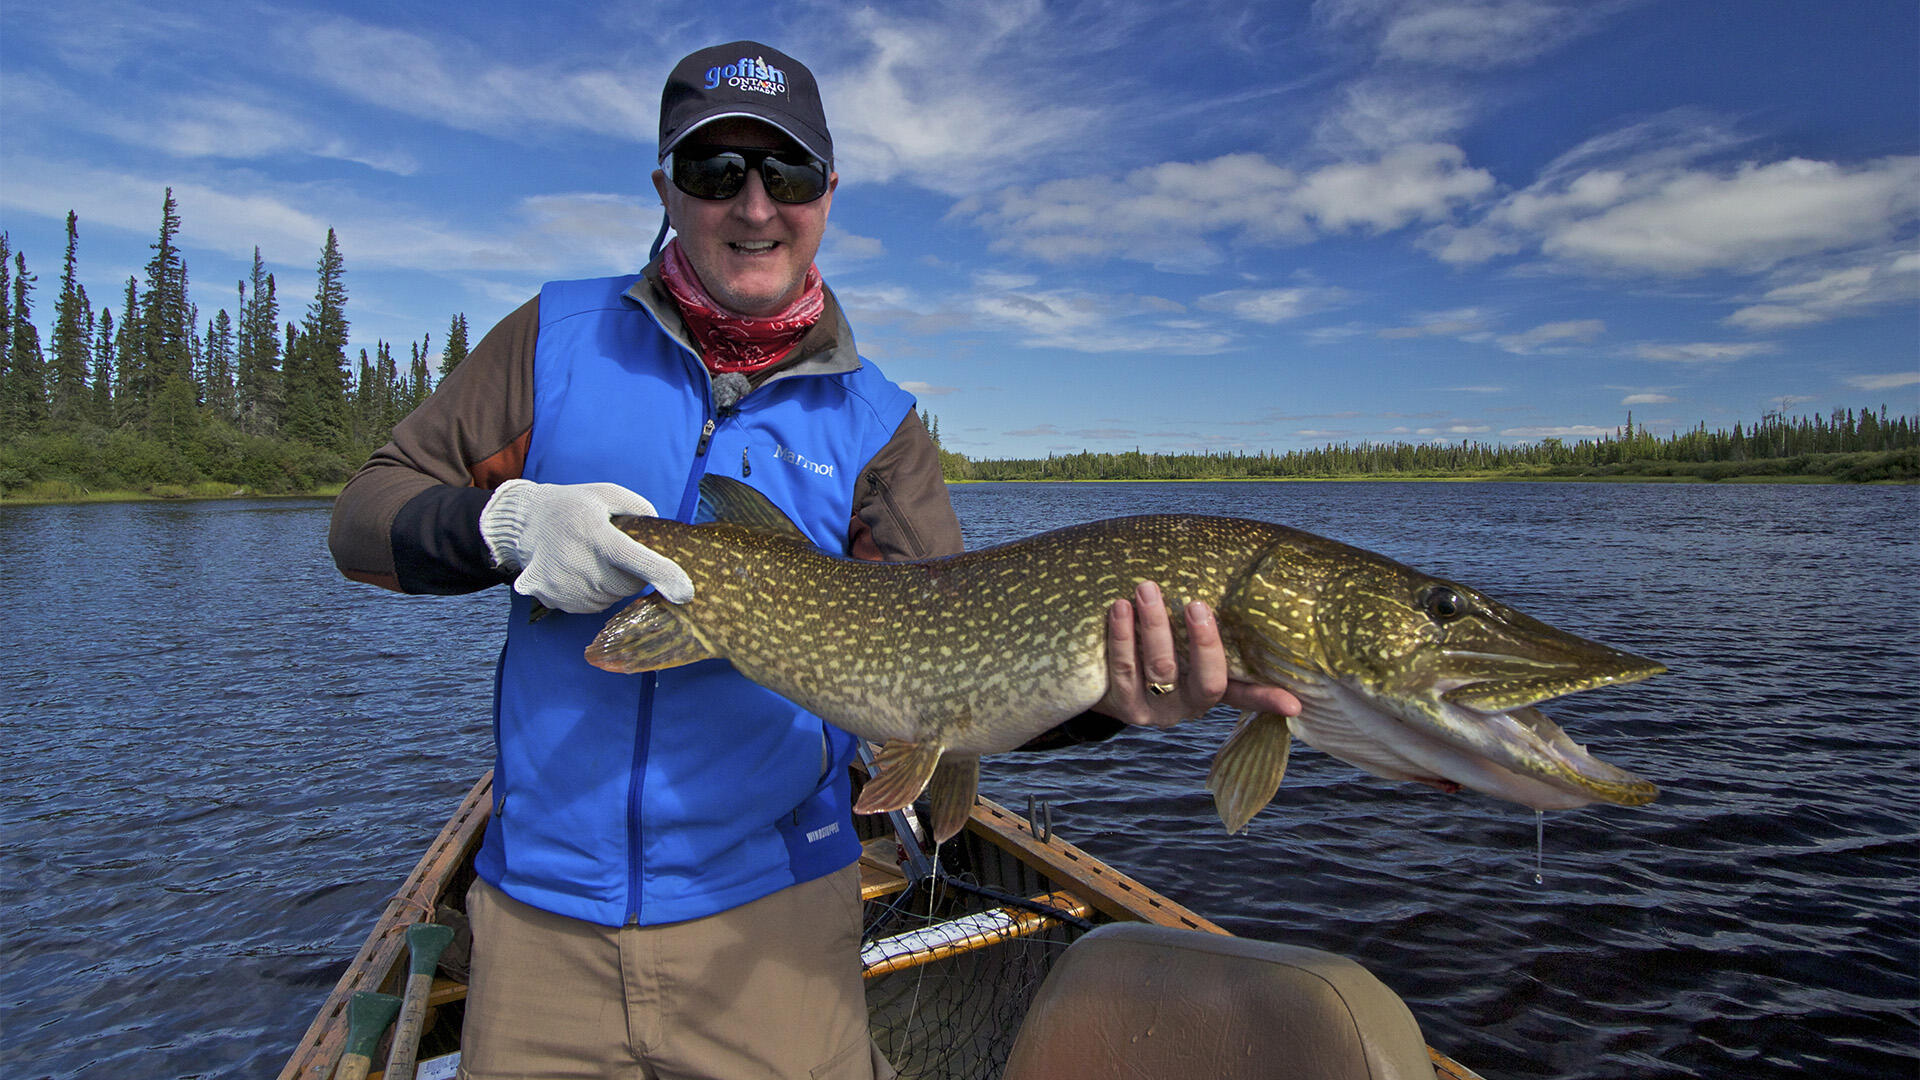 Northern ontario fly in pike fishing at pym island lodge for Ontario fly in fishing